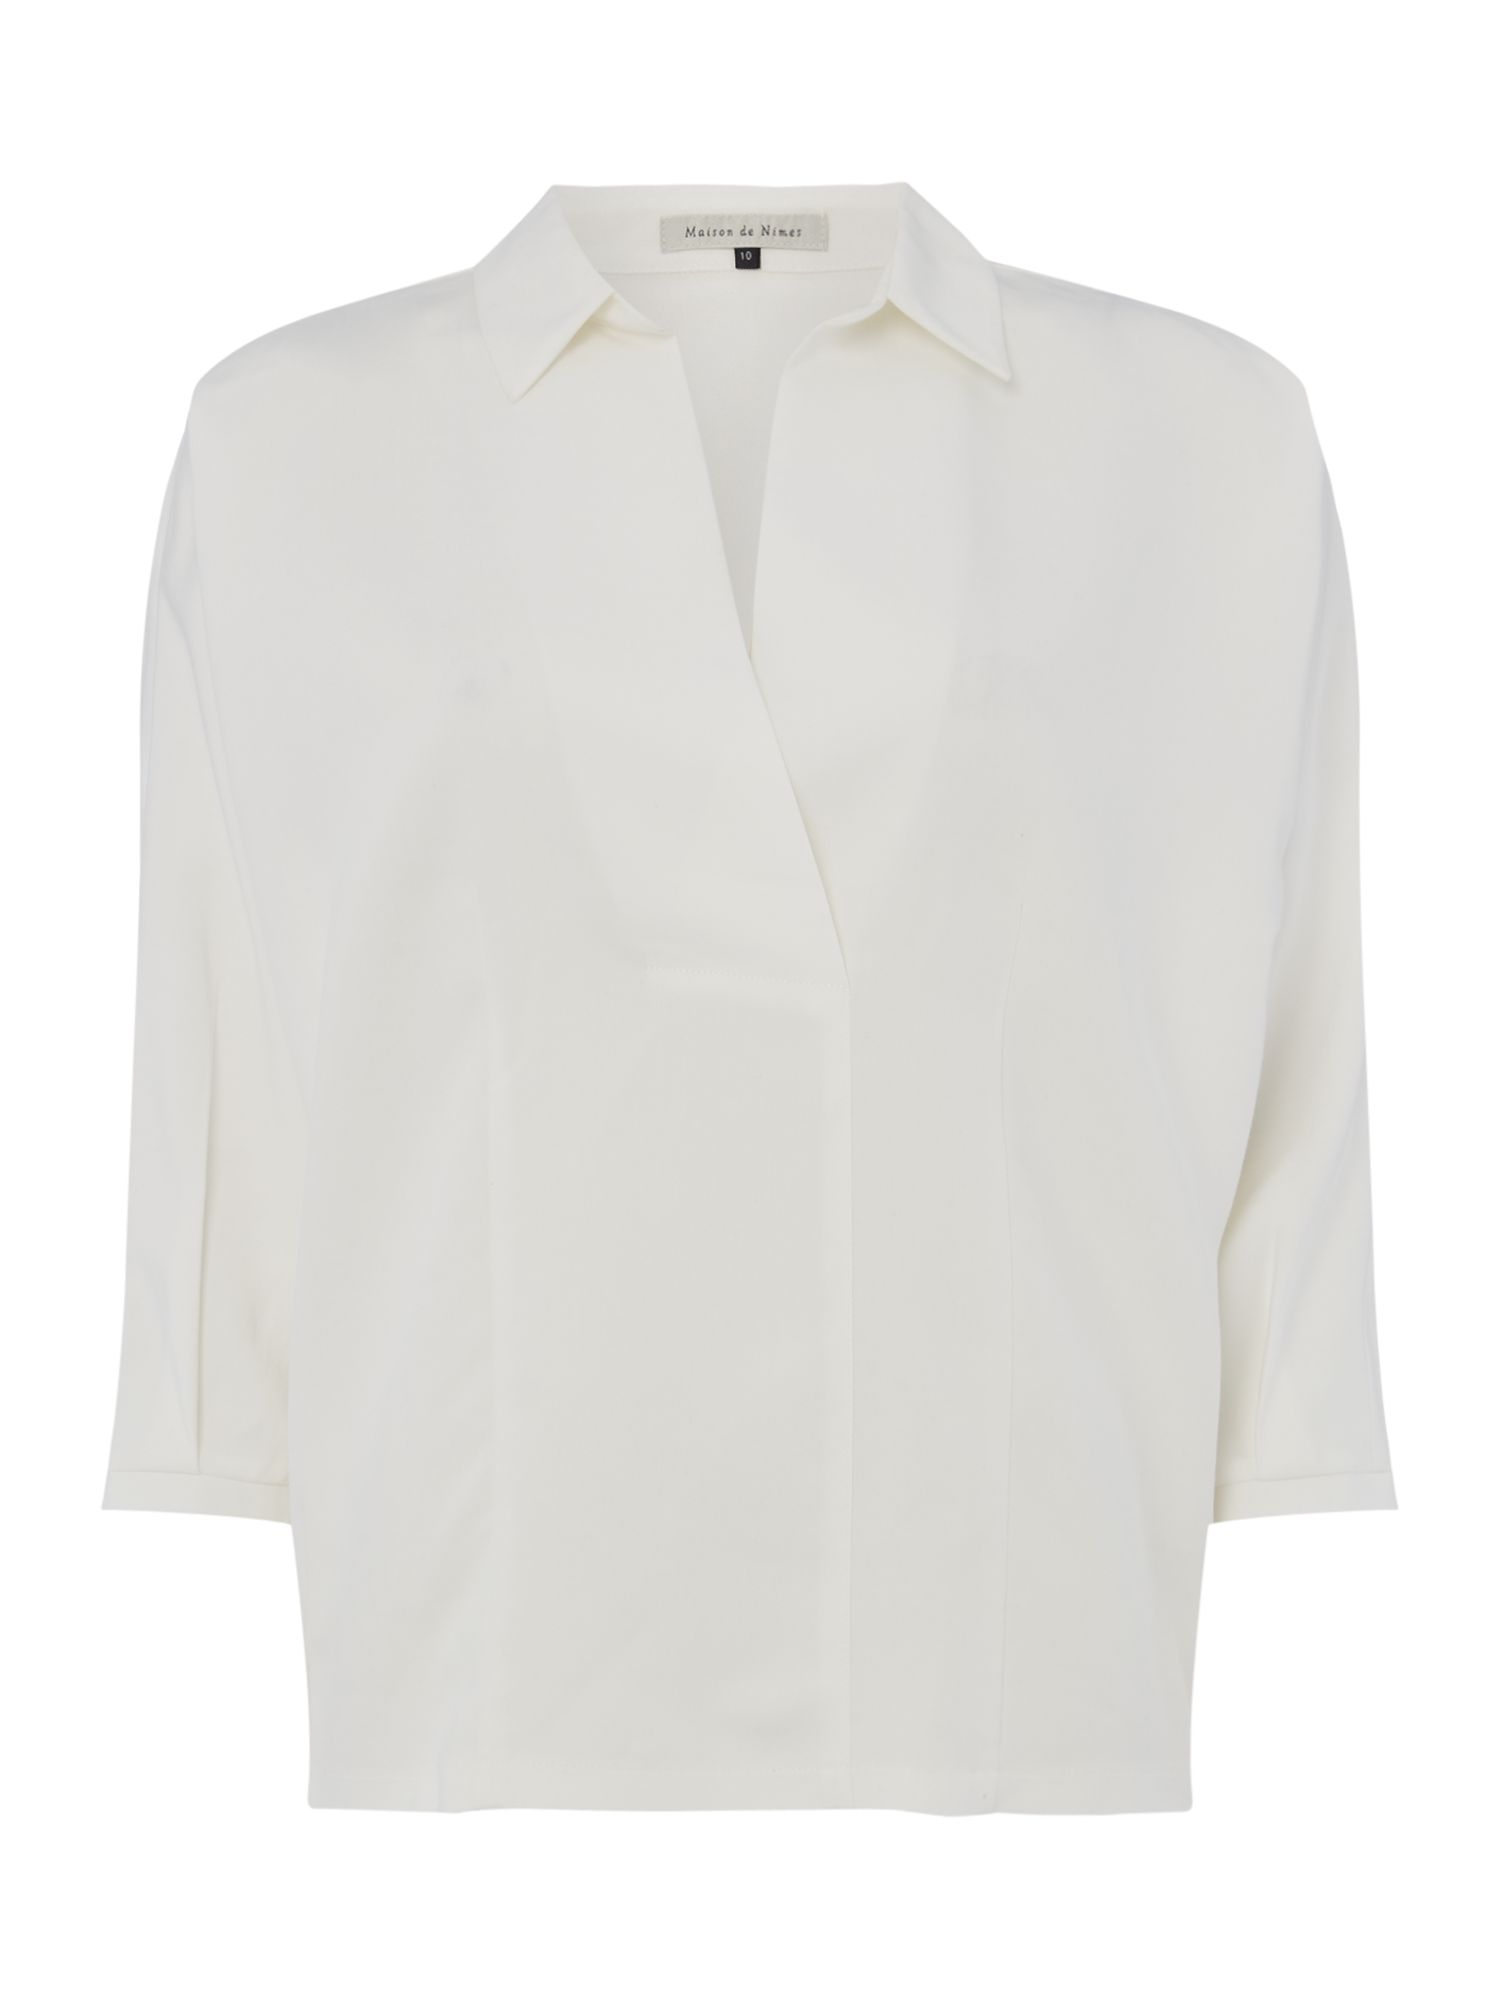 Maison De Nimes Pleat Back Shirt, Cream